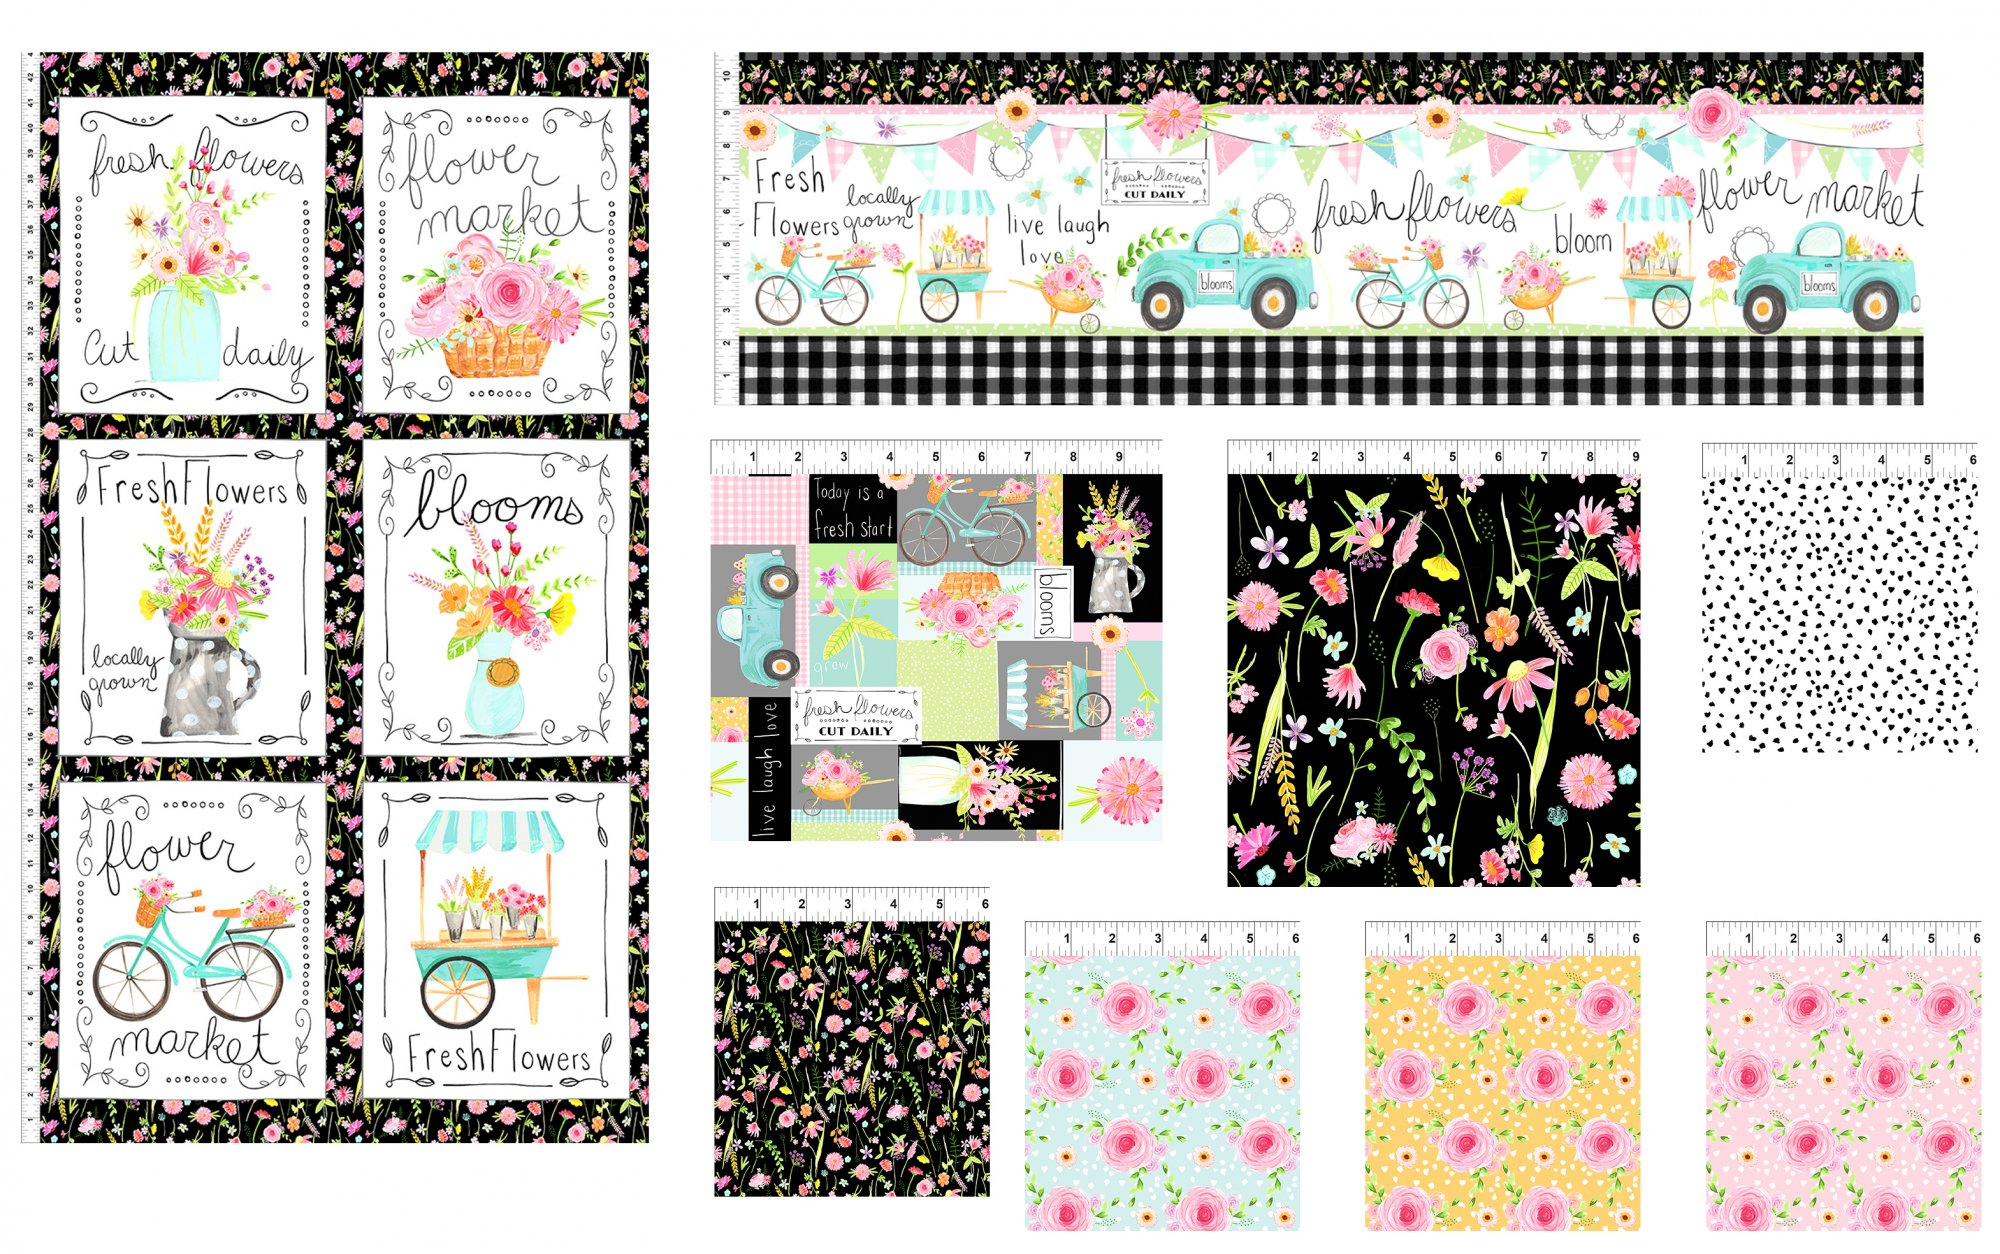 Flower Market Complete 15 yd. Collection